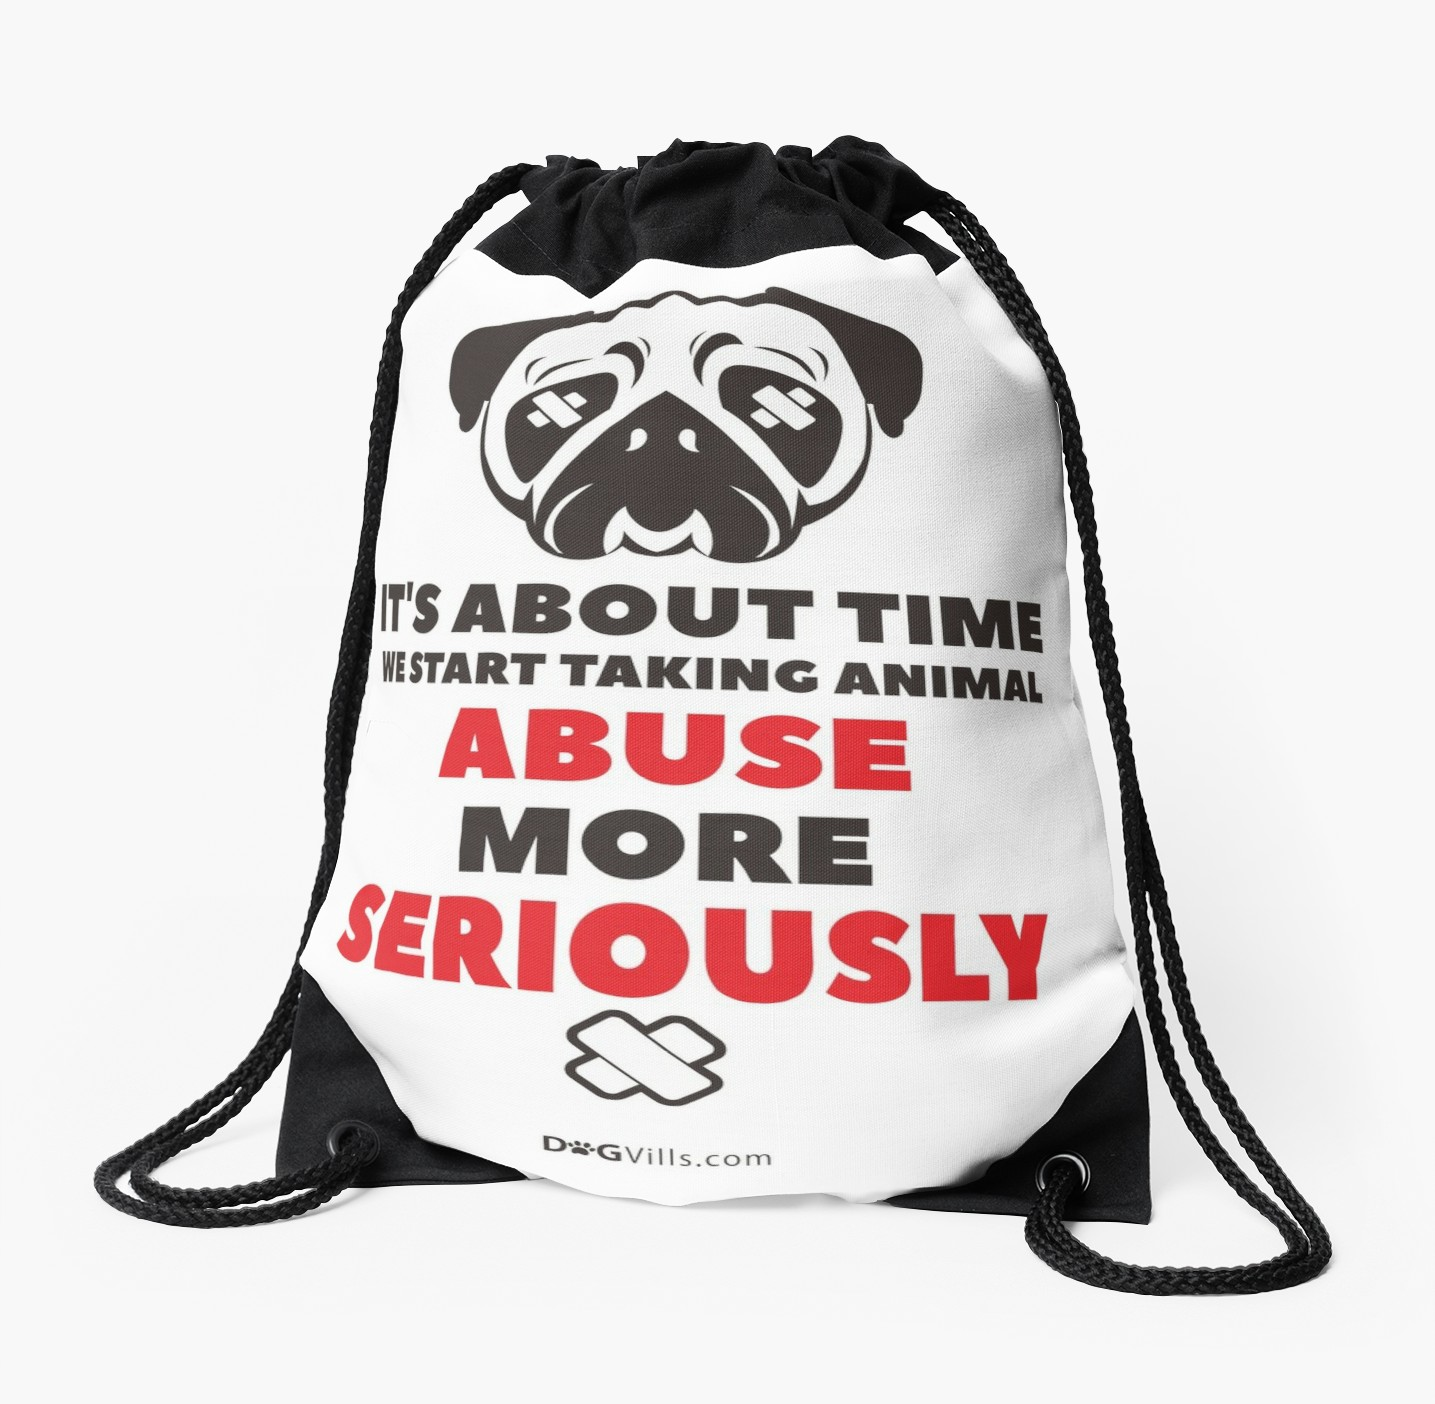 'No Excuse For Animal Abuse' Drawstring Bag by Dogvills